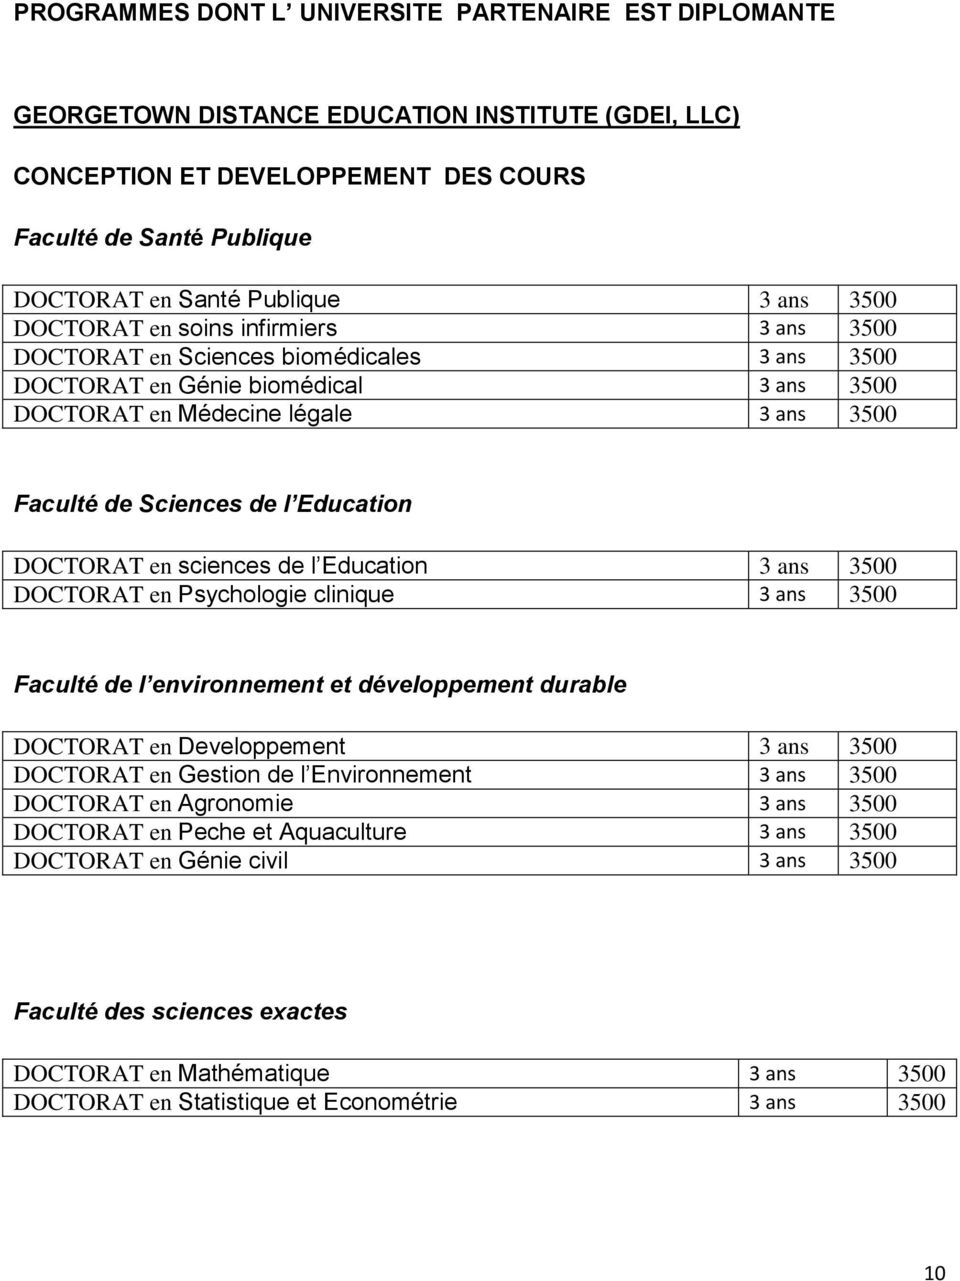 Education DOCTORAT en sciences de l Education 3 ans 3500 DOCTORAT en Psychologie clinique 3 ans 3500 Faculté de l environnement et développement durable DOCTORAT en Developpement 3 ans 3500 DOCTORAT